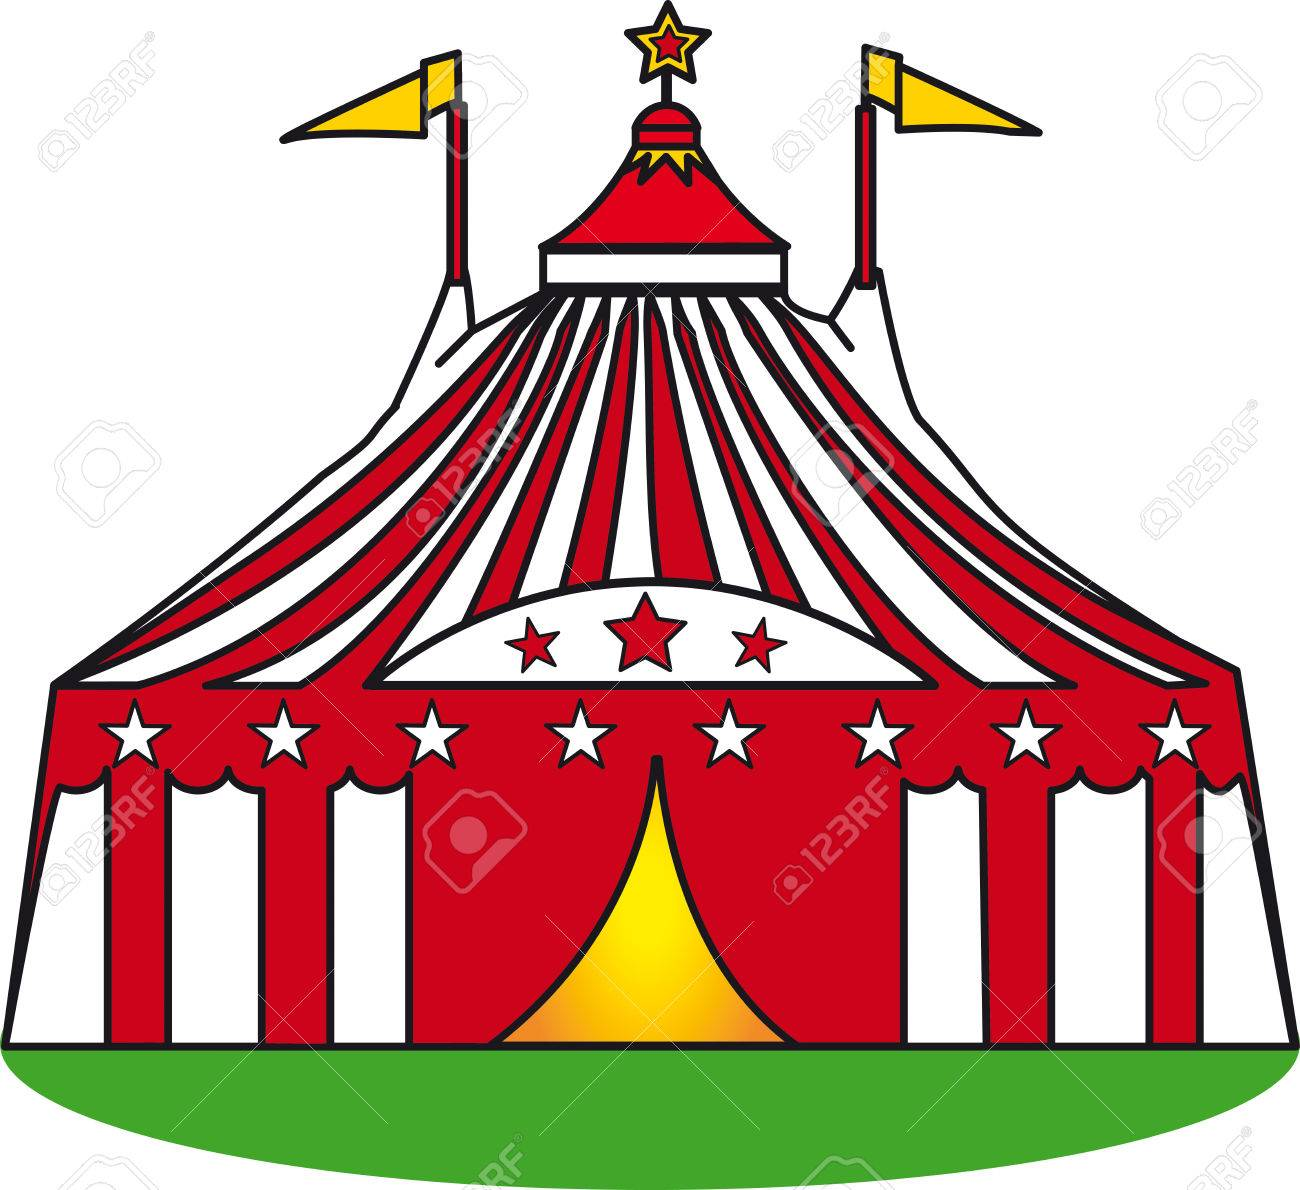 An illustration of a circus tent on a grass Stock Vector - 5126300  sc 1 st  123RF.com & An Illustration Of A Circus Tent On A Grass Royalty Free Cliparts ...